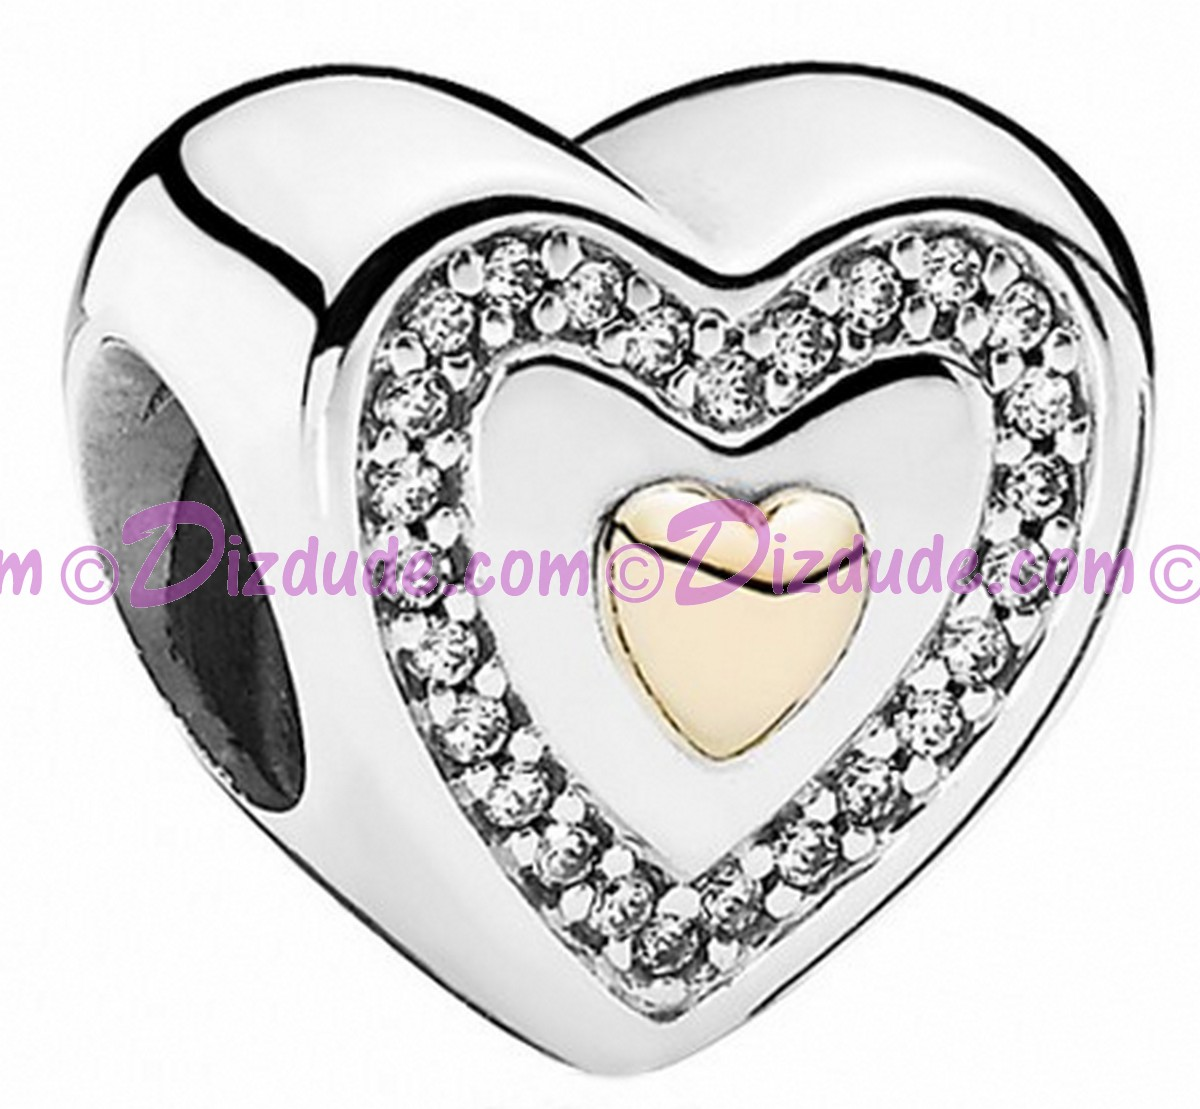 (SOLD OUT) Disney Pandora Always in My Heart Silver Charm with 14k gold heart & 26 Cubic Zirconias Limited Edition - Mothers Day Collection 2015